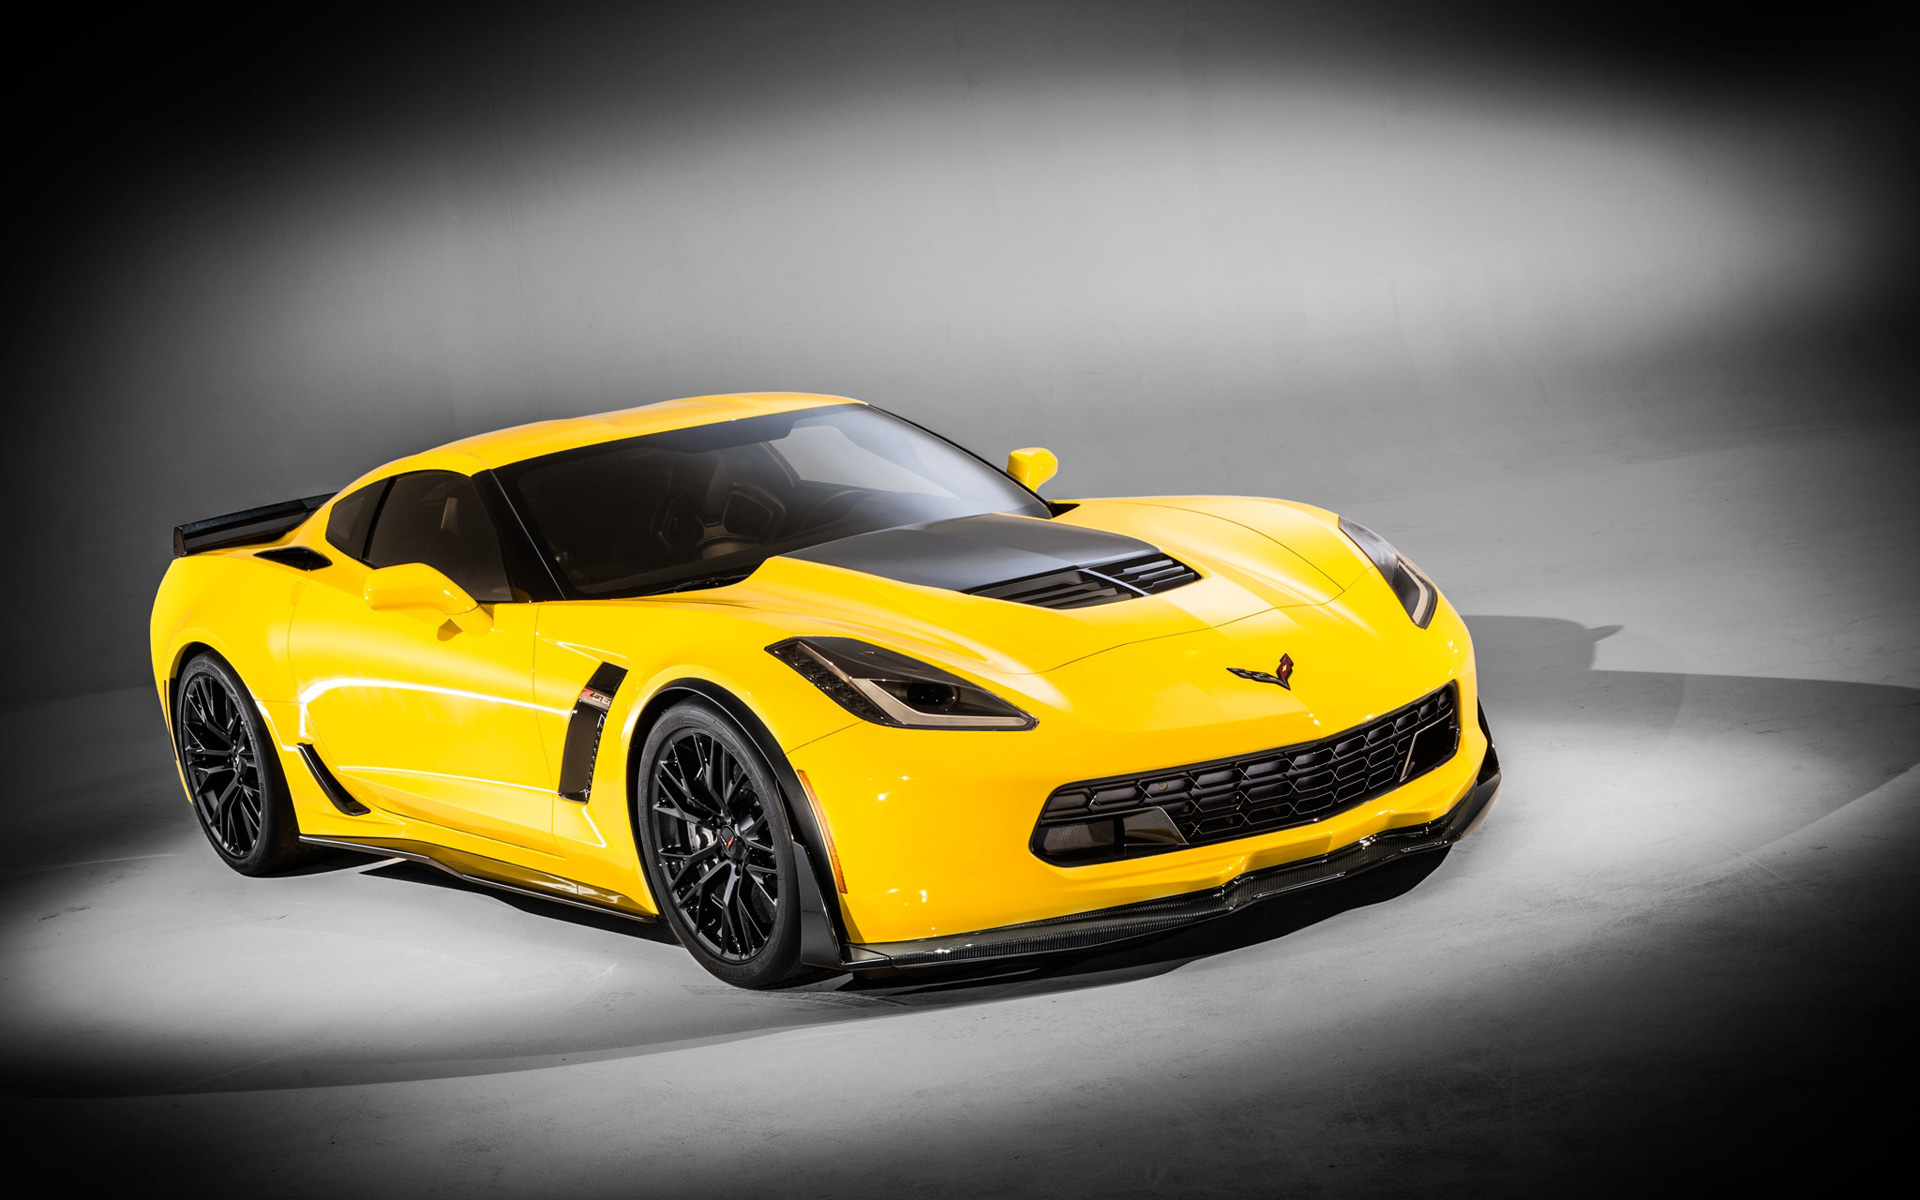 2015 Chevrolet Corvette Z06 HD Wallpapers 1920x1200